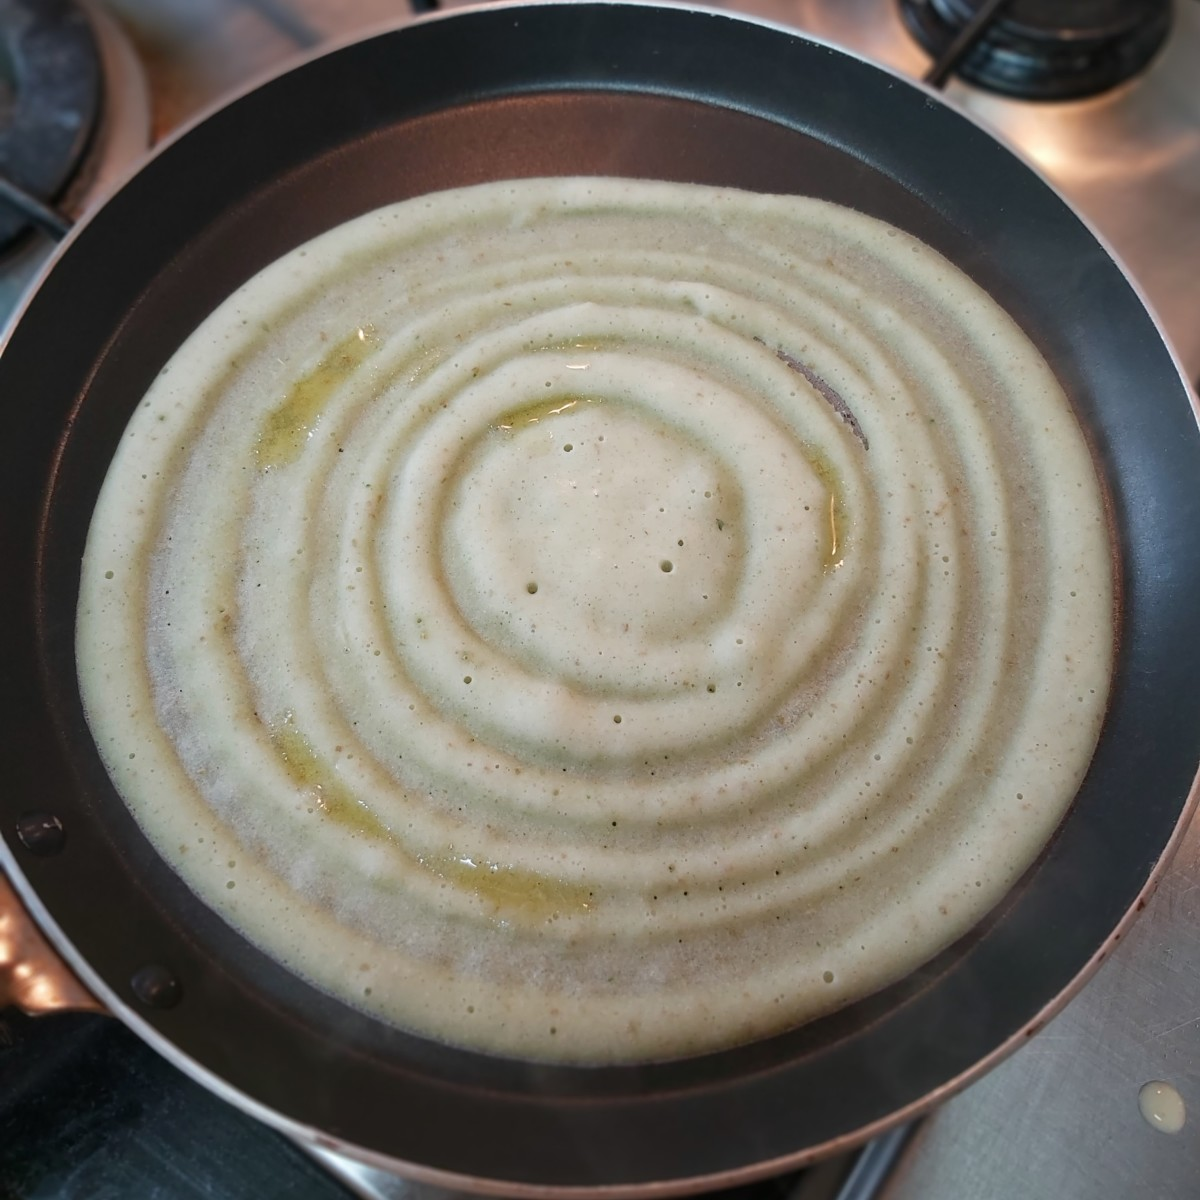 Smear a few drops of ghee on the dosa. Cover and cook on medium to low heat for about 1 minute or till it has cooked properly.